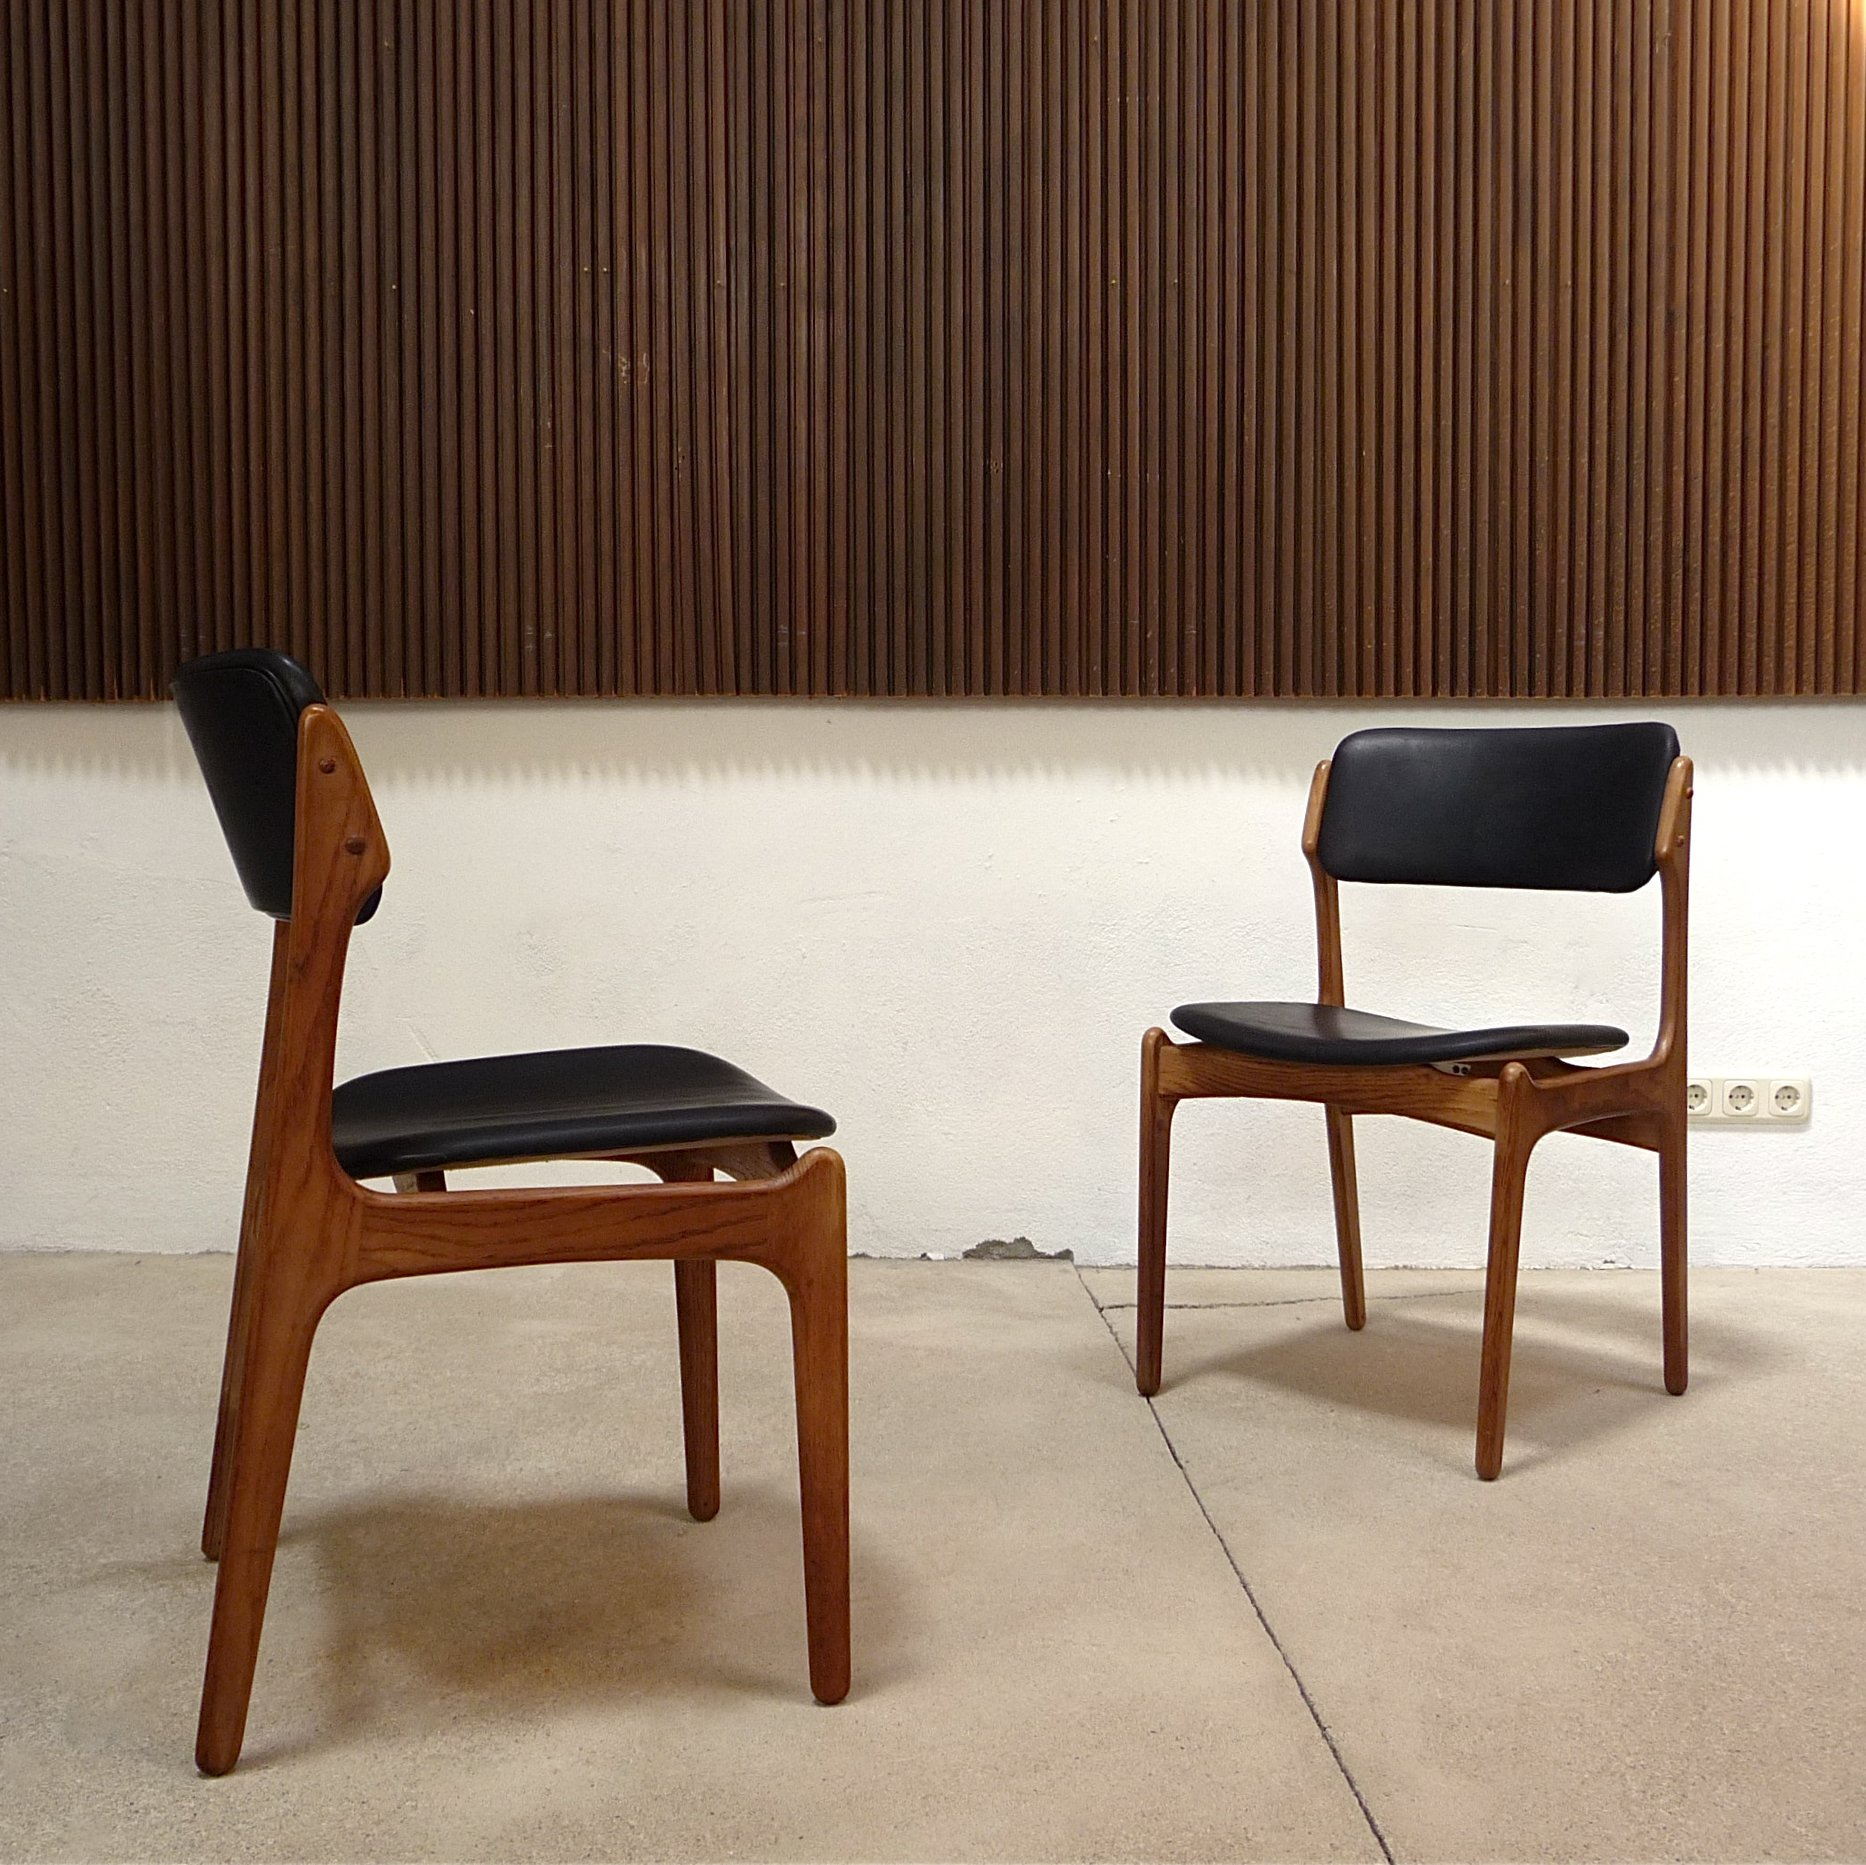 Siste Model 49 Danish Leather Chairs by Erik Buch for O.D. Møbler, 1960s LL-88